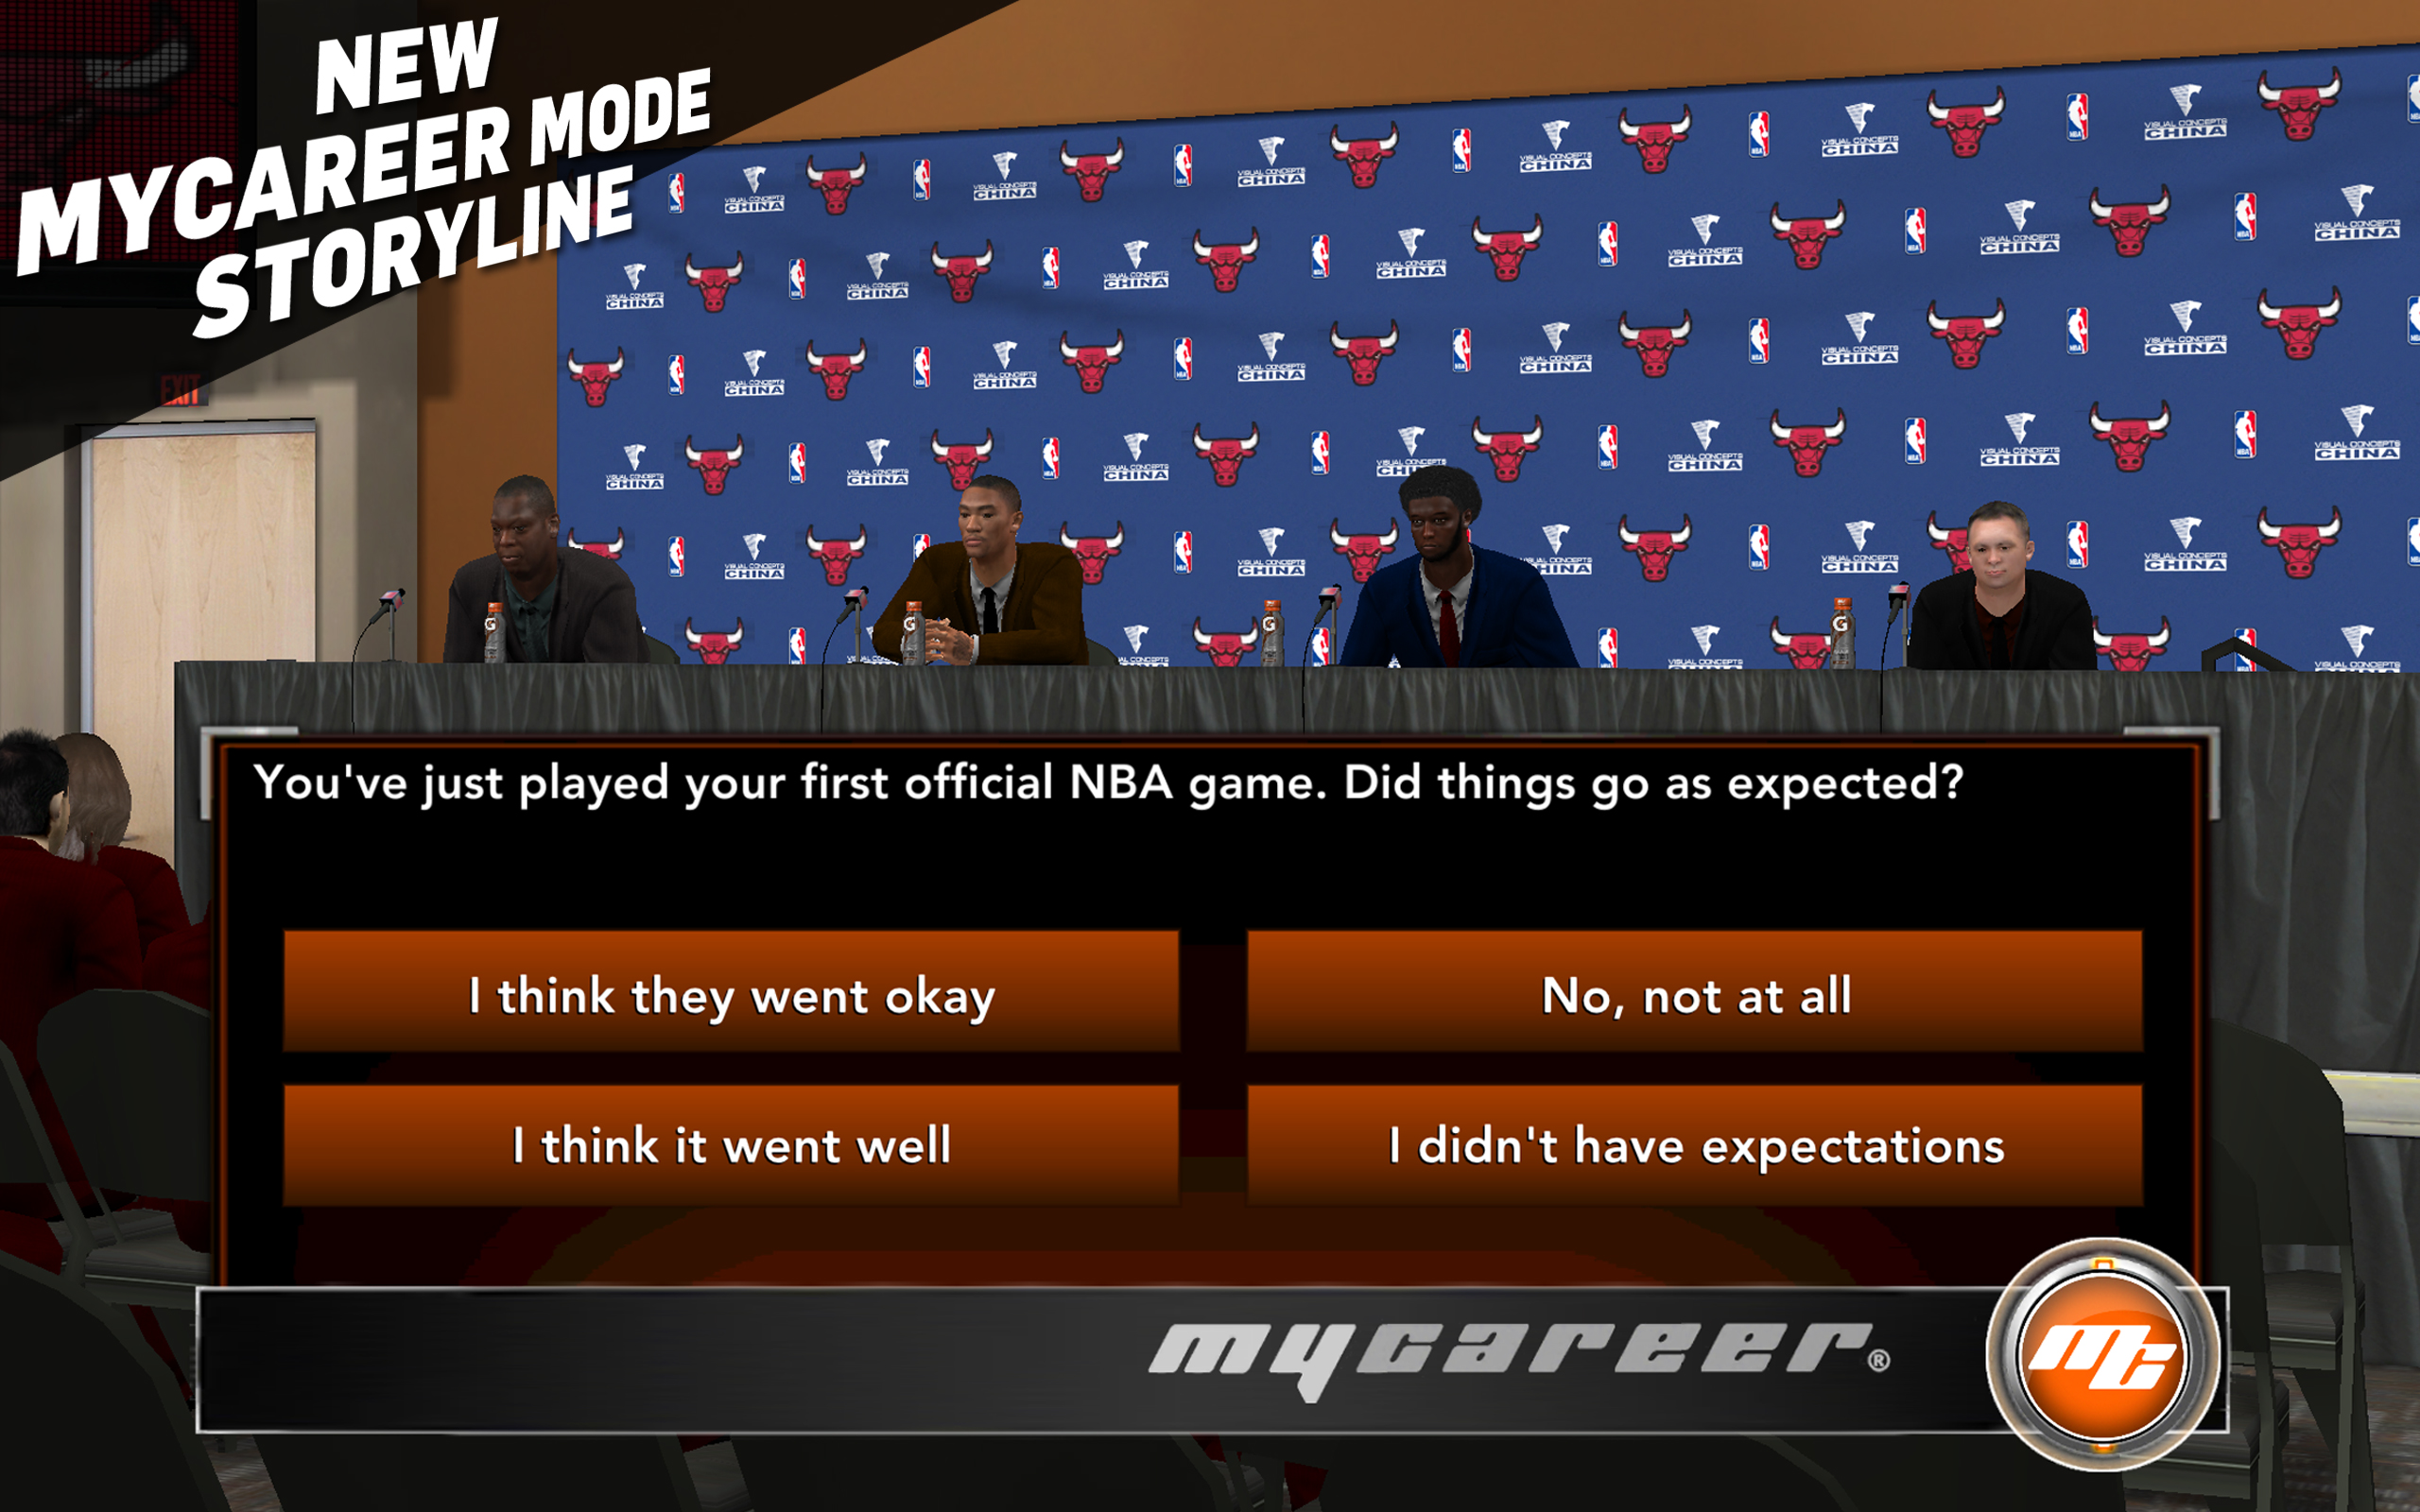 nba 2k15 free download for android full version